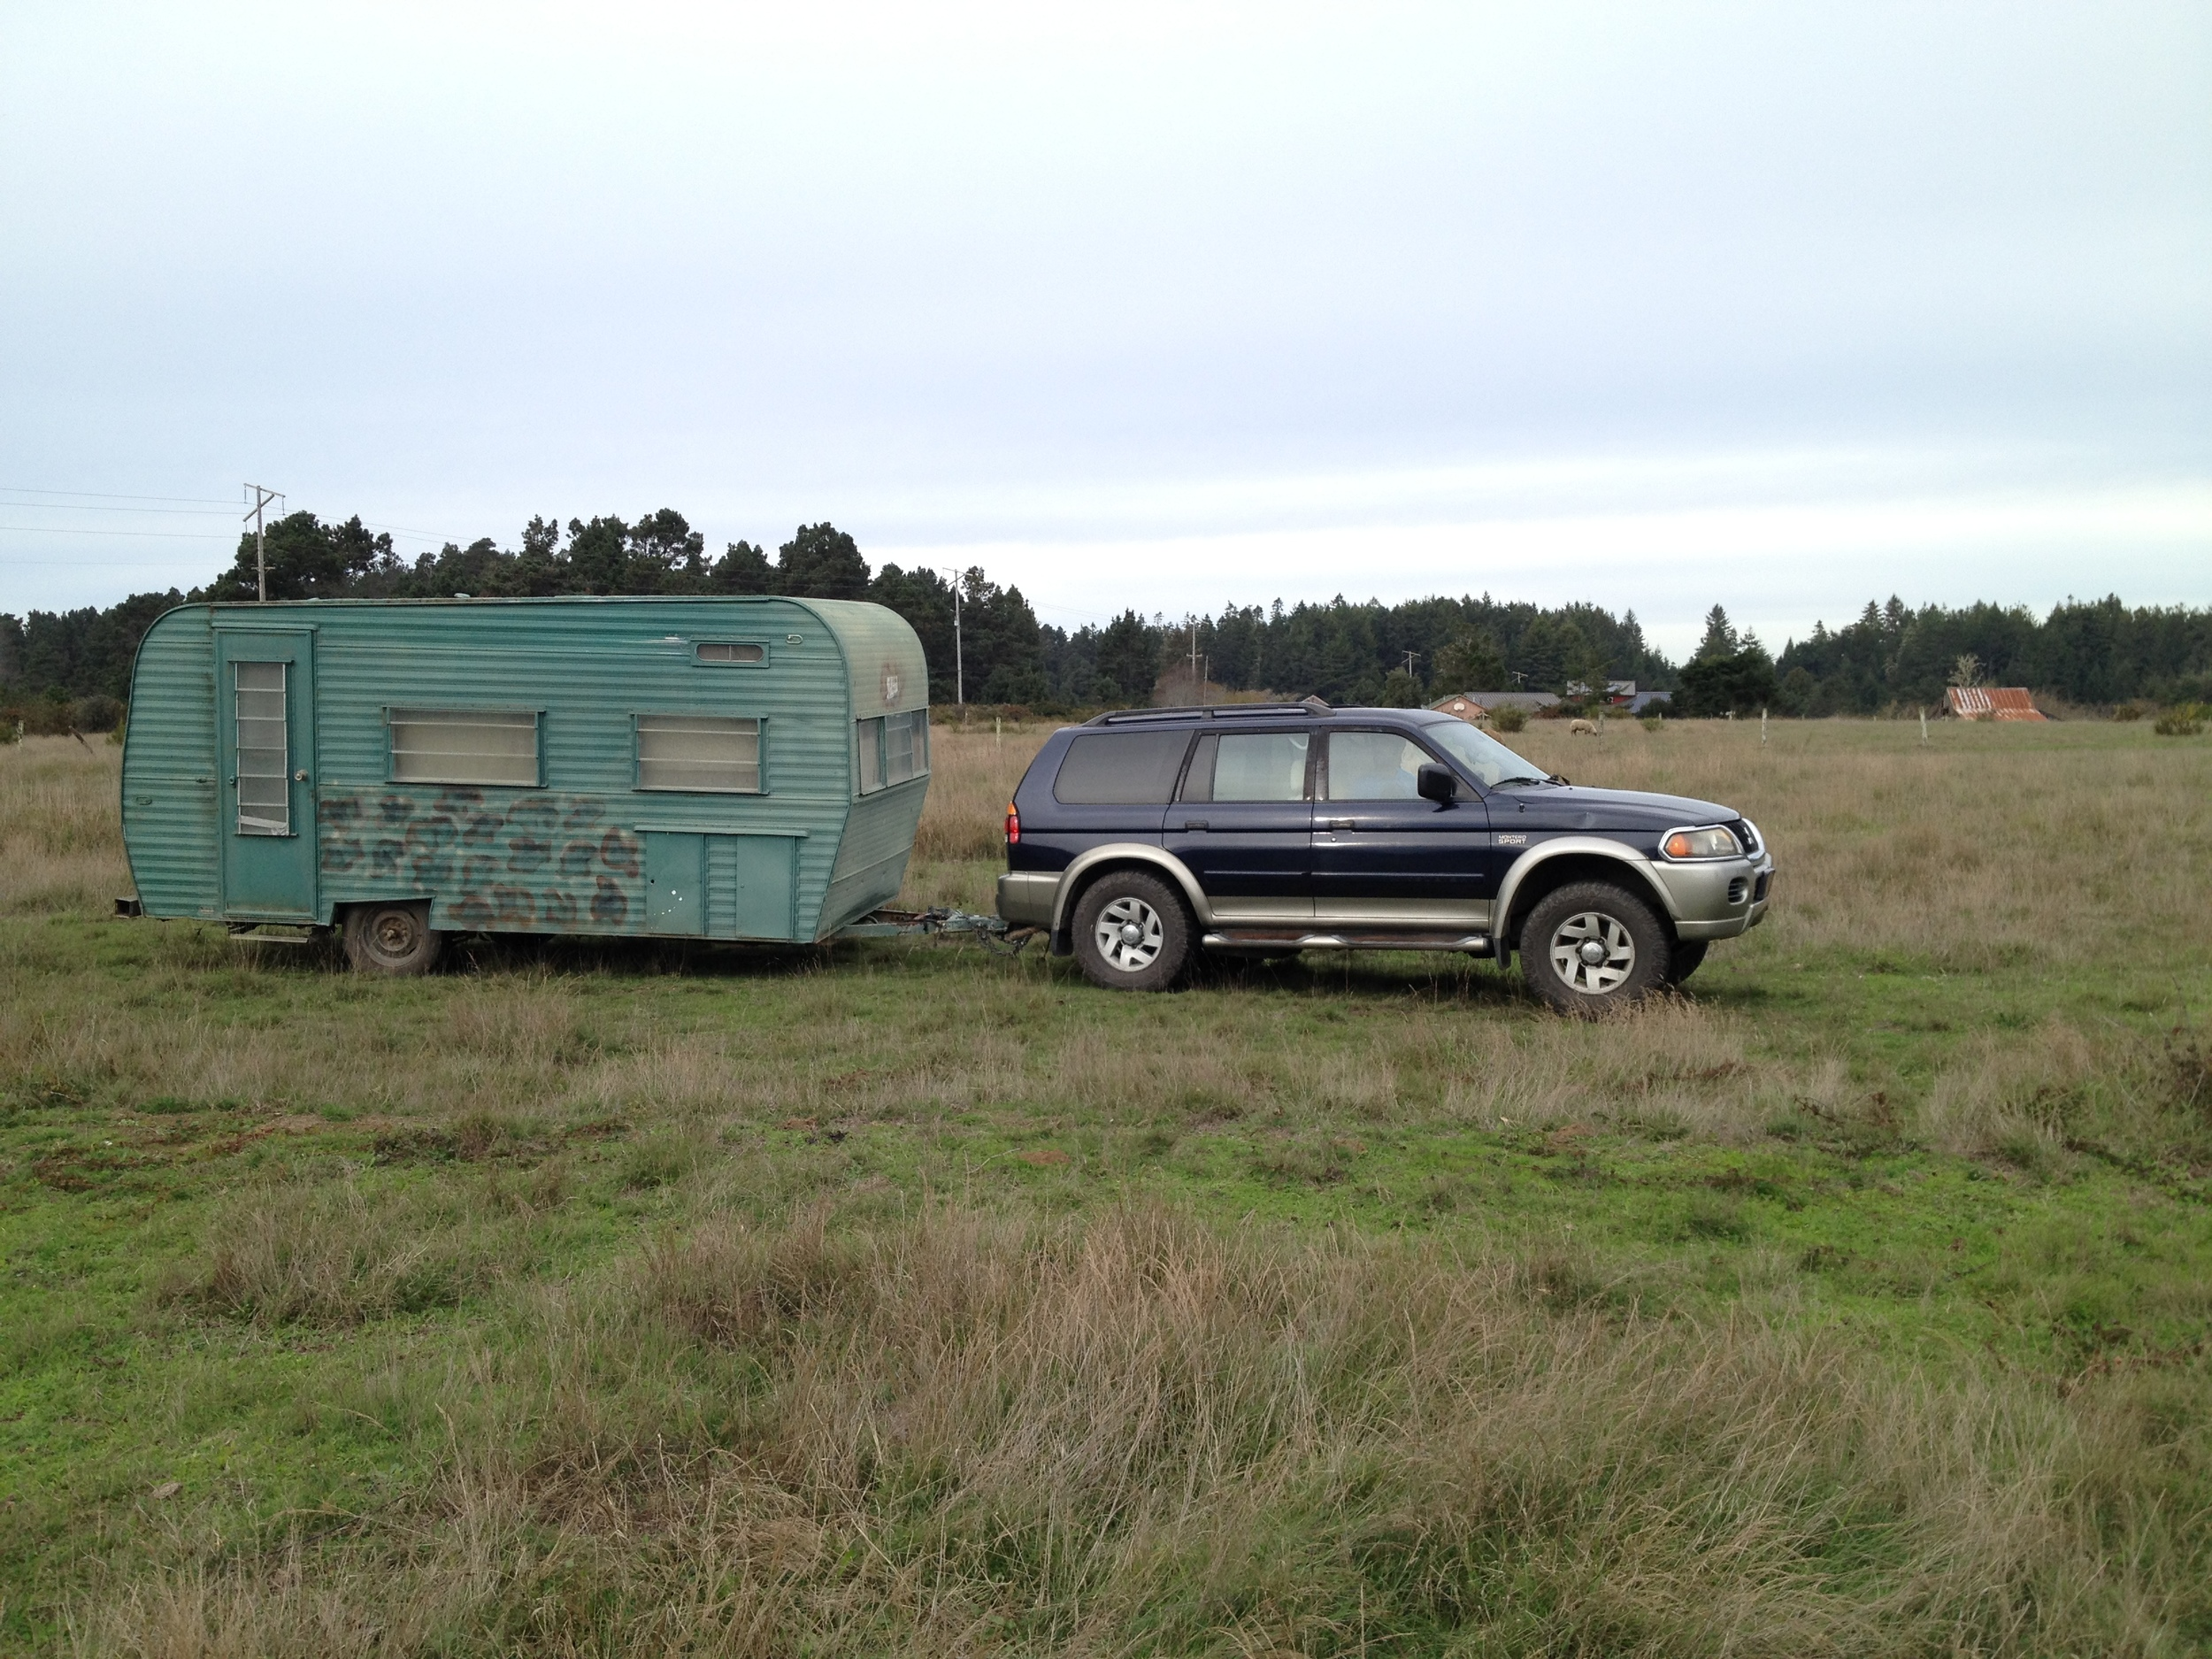 We towed it from Chico to Caspar...